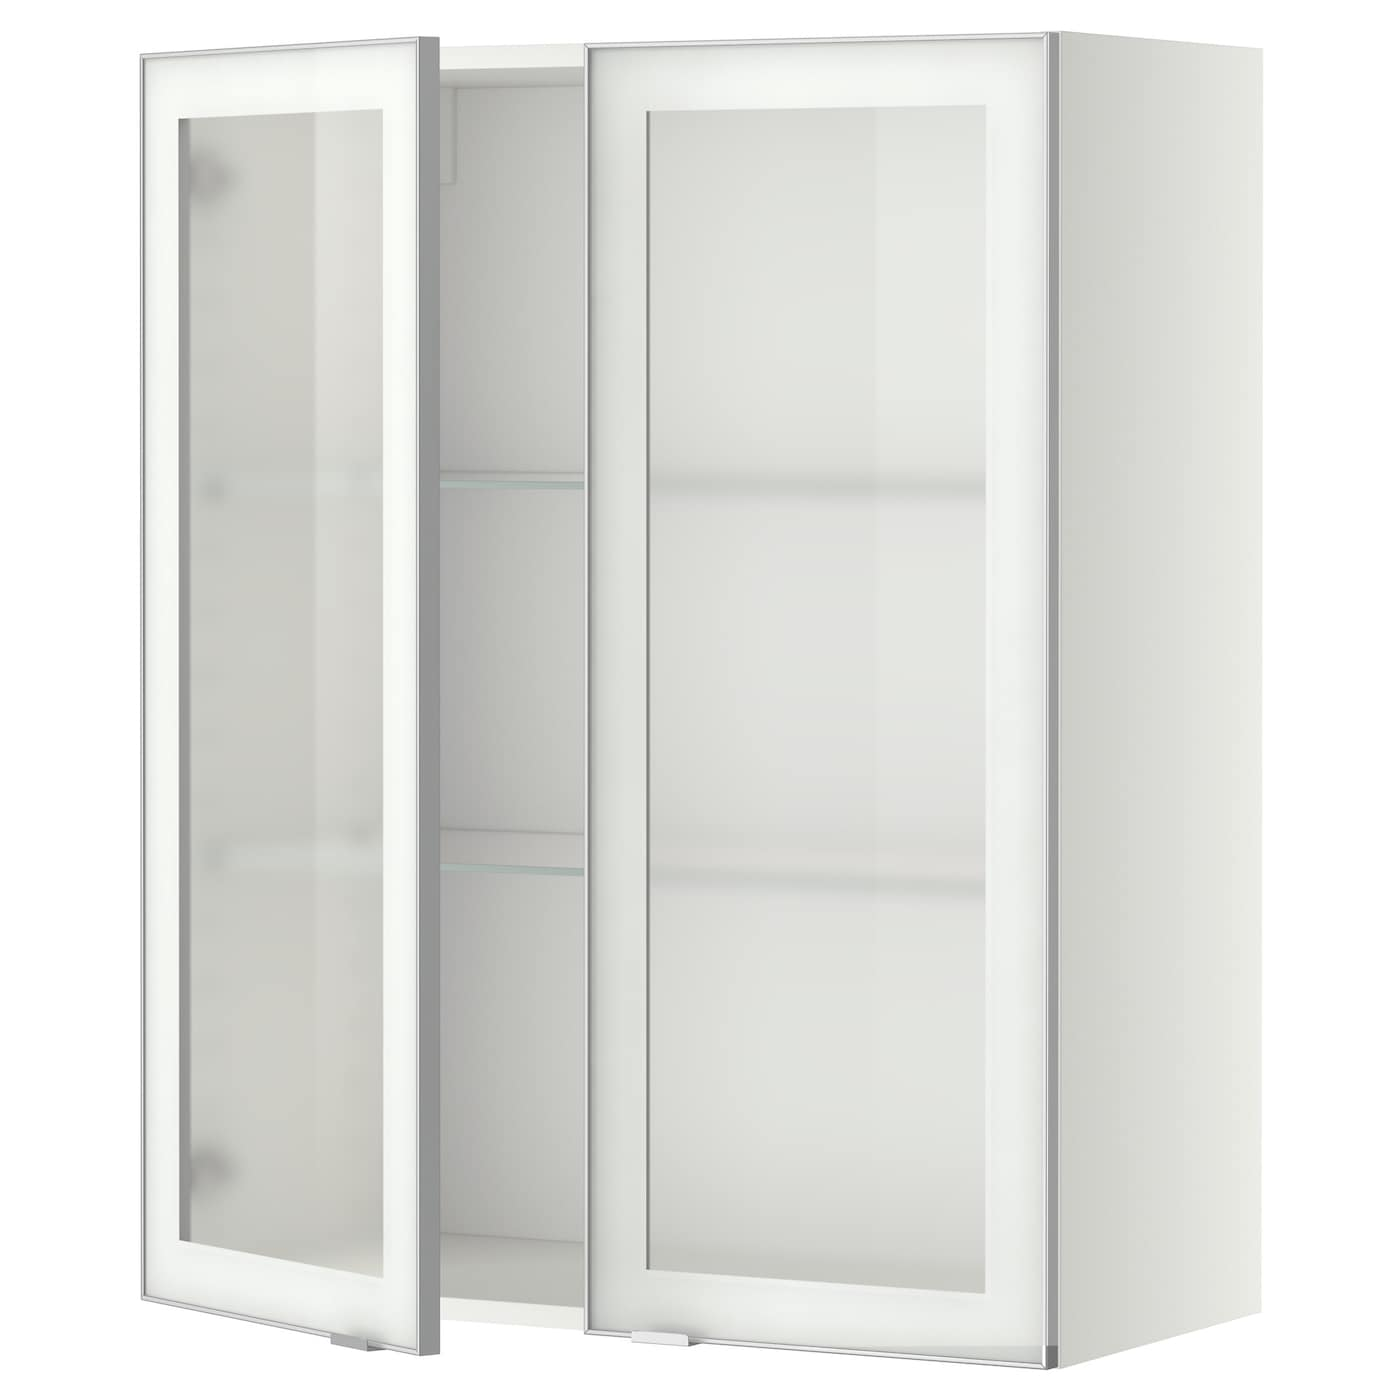 Metod Wall Cabinet W Shelves 2 Glass Drs White Jutis